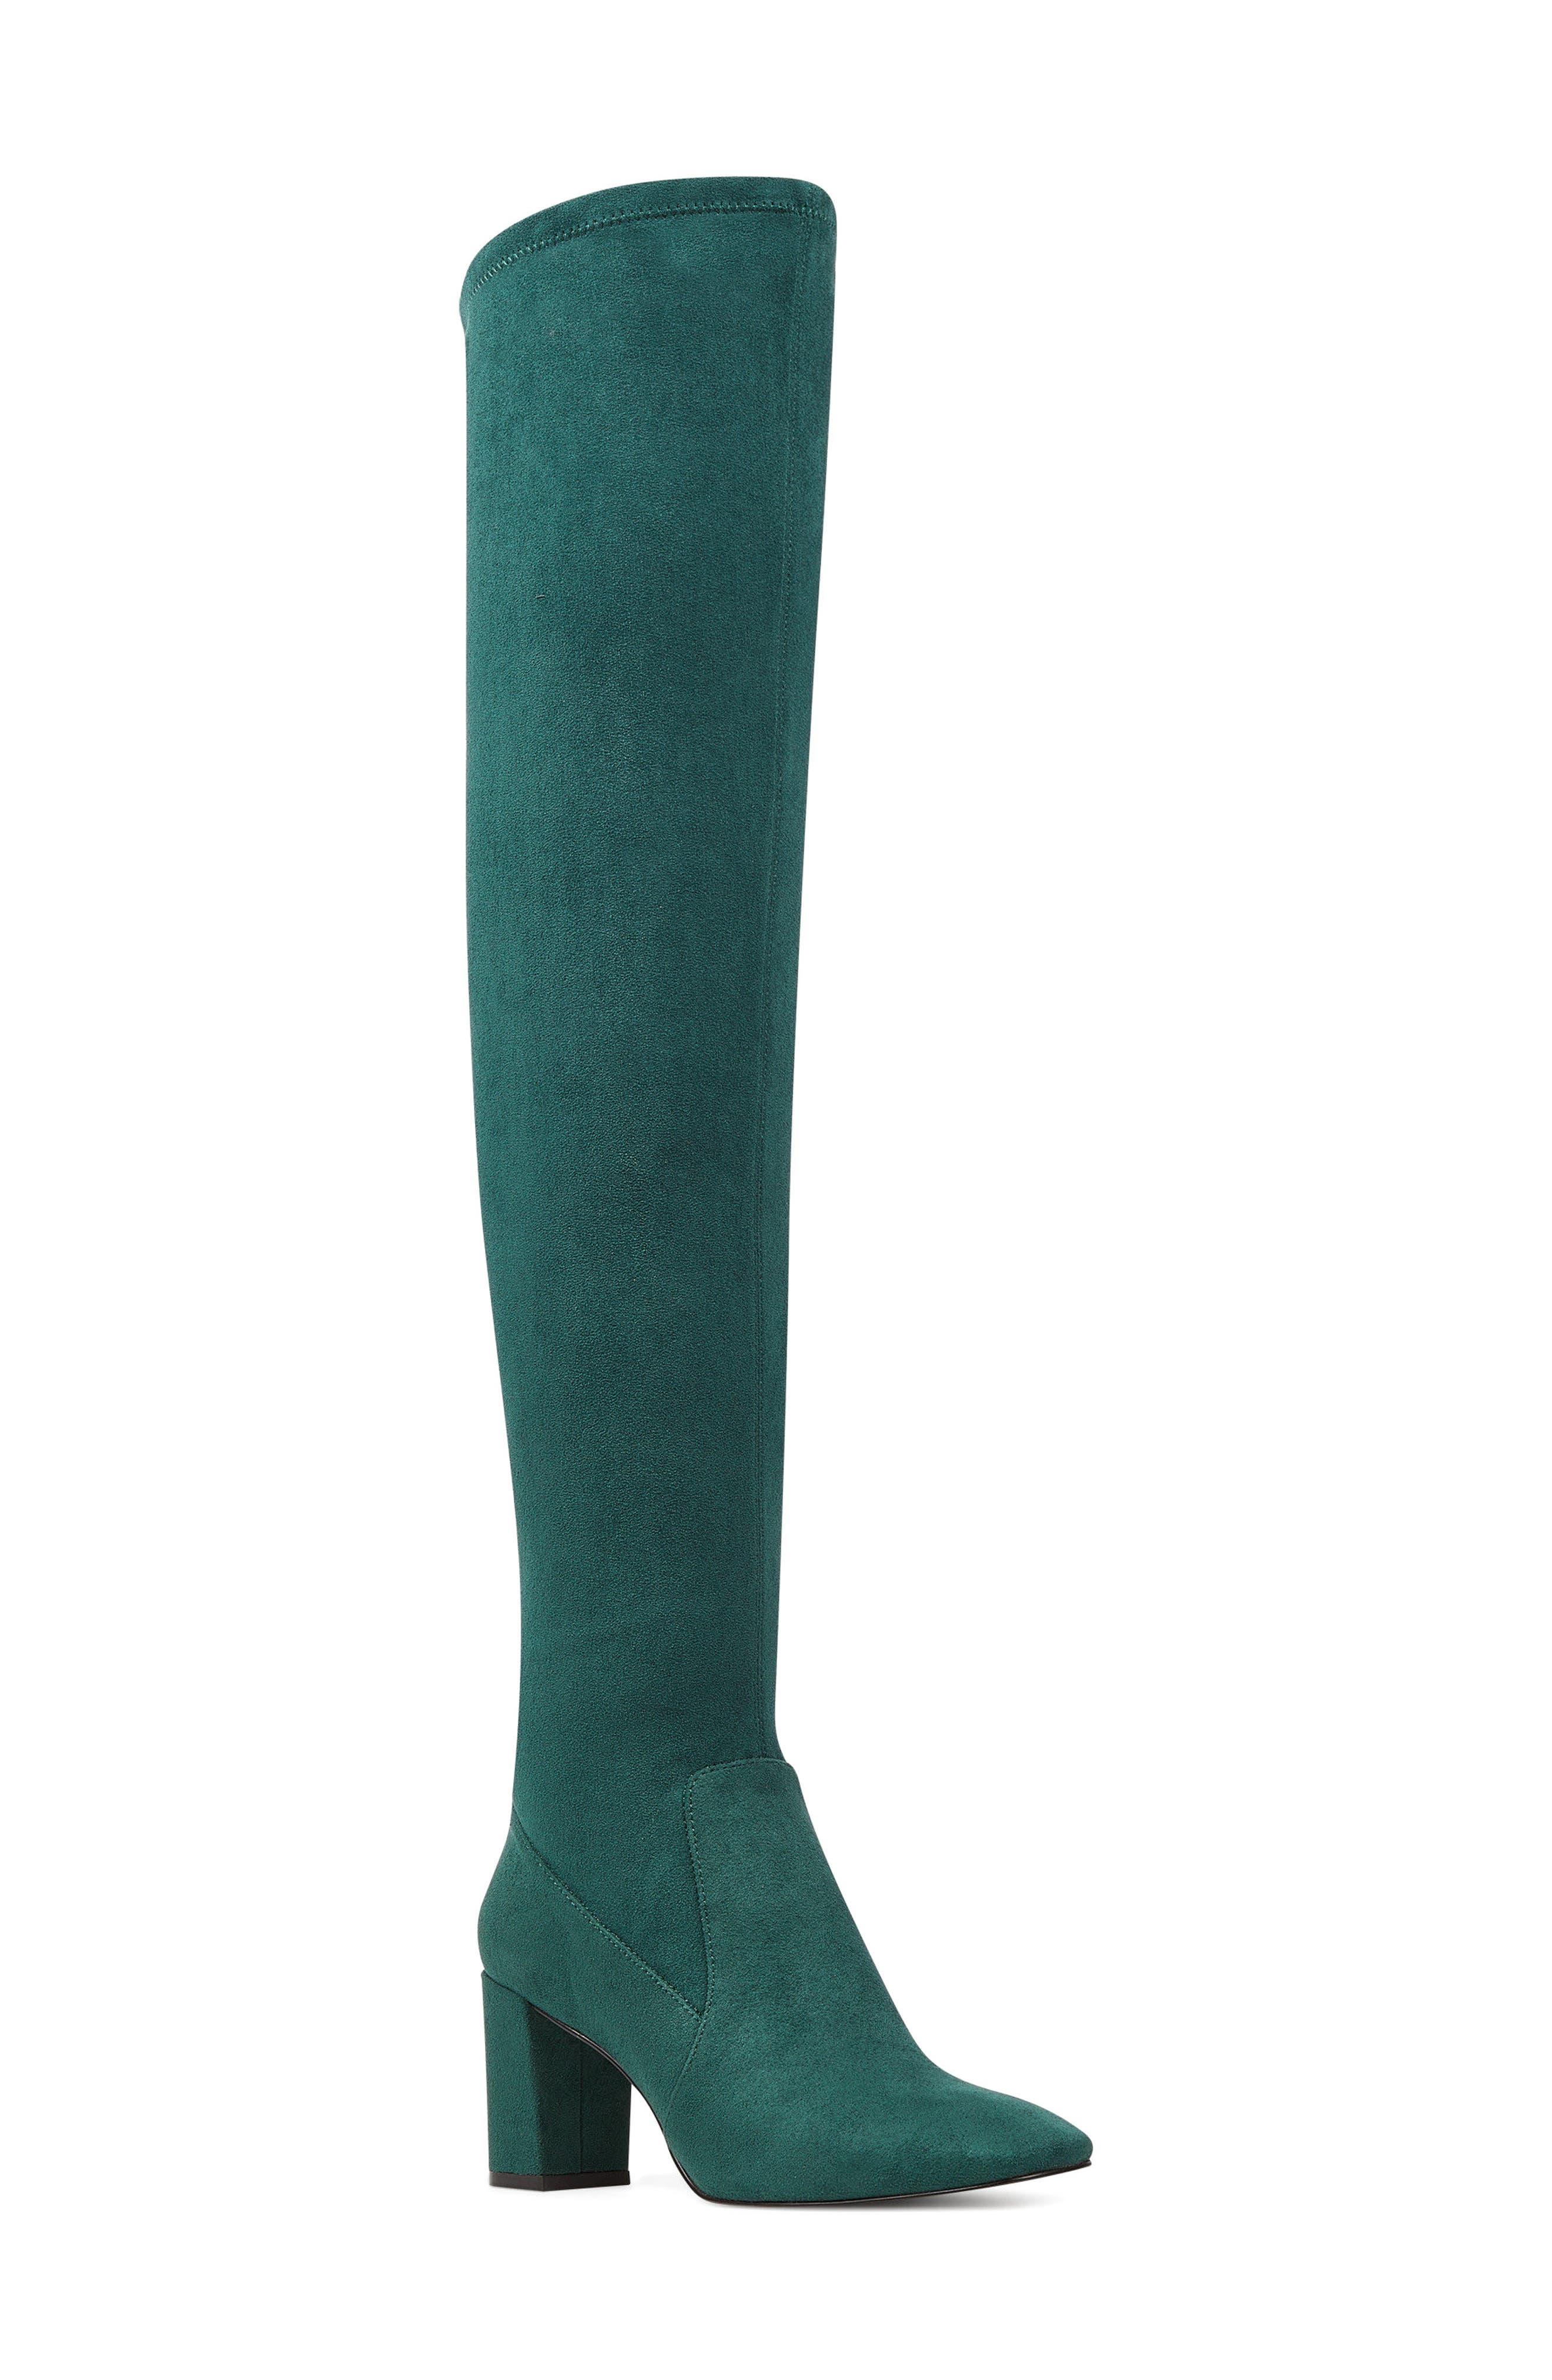 Alternate Image 1 Selected - Nine West Xperian Over the Knee Boot (Women)